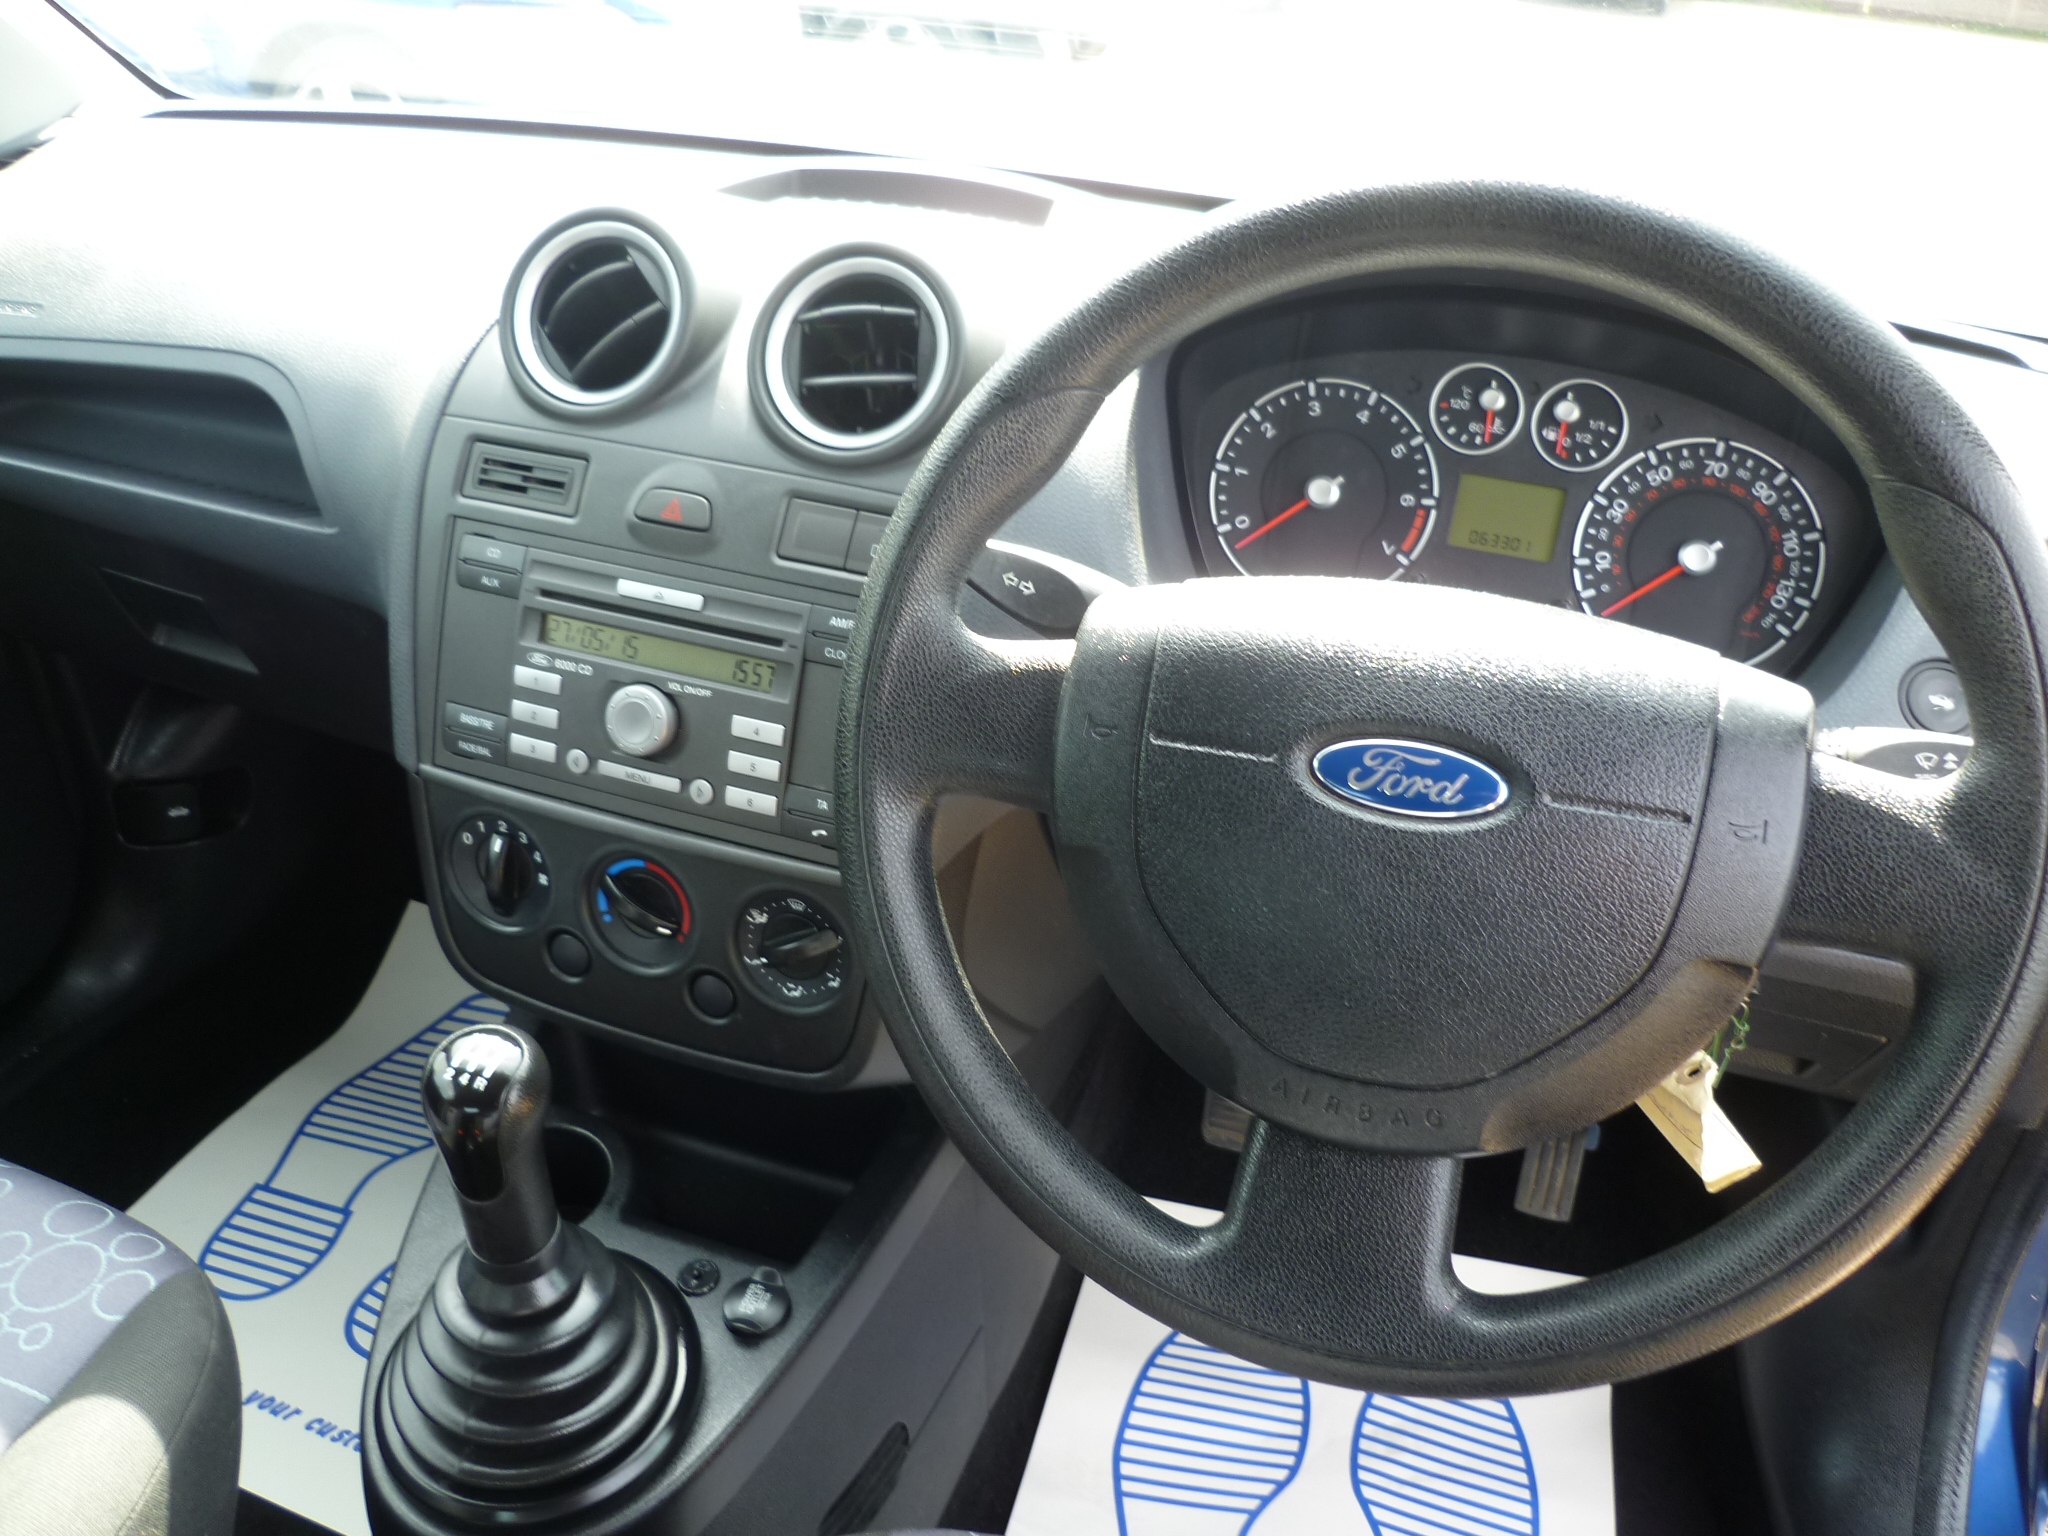 Ford Fiesta 1.25 Style 3Dr 012